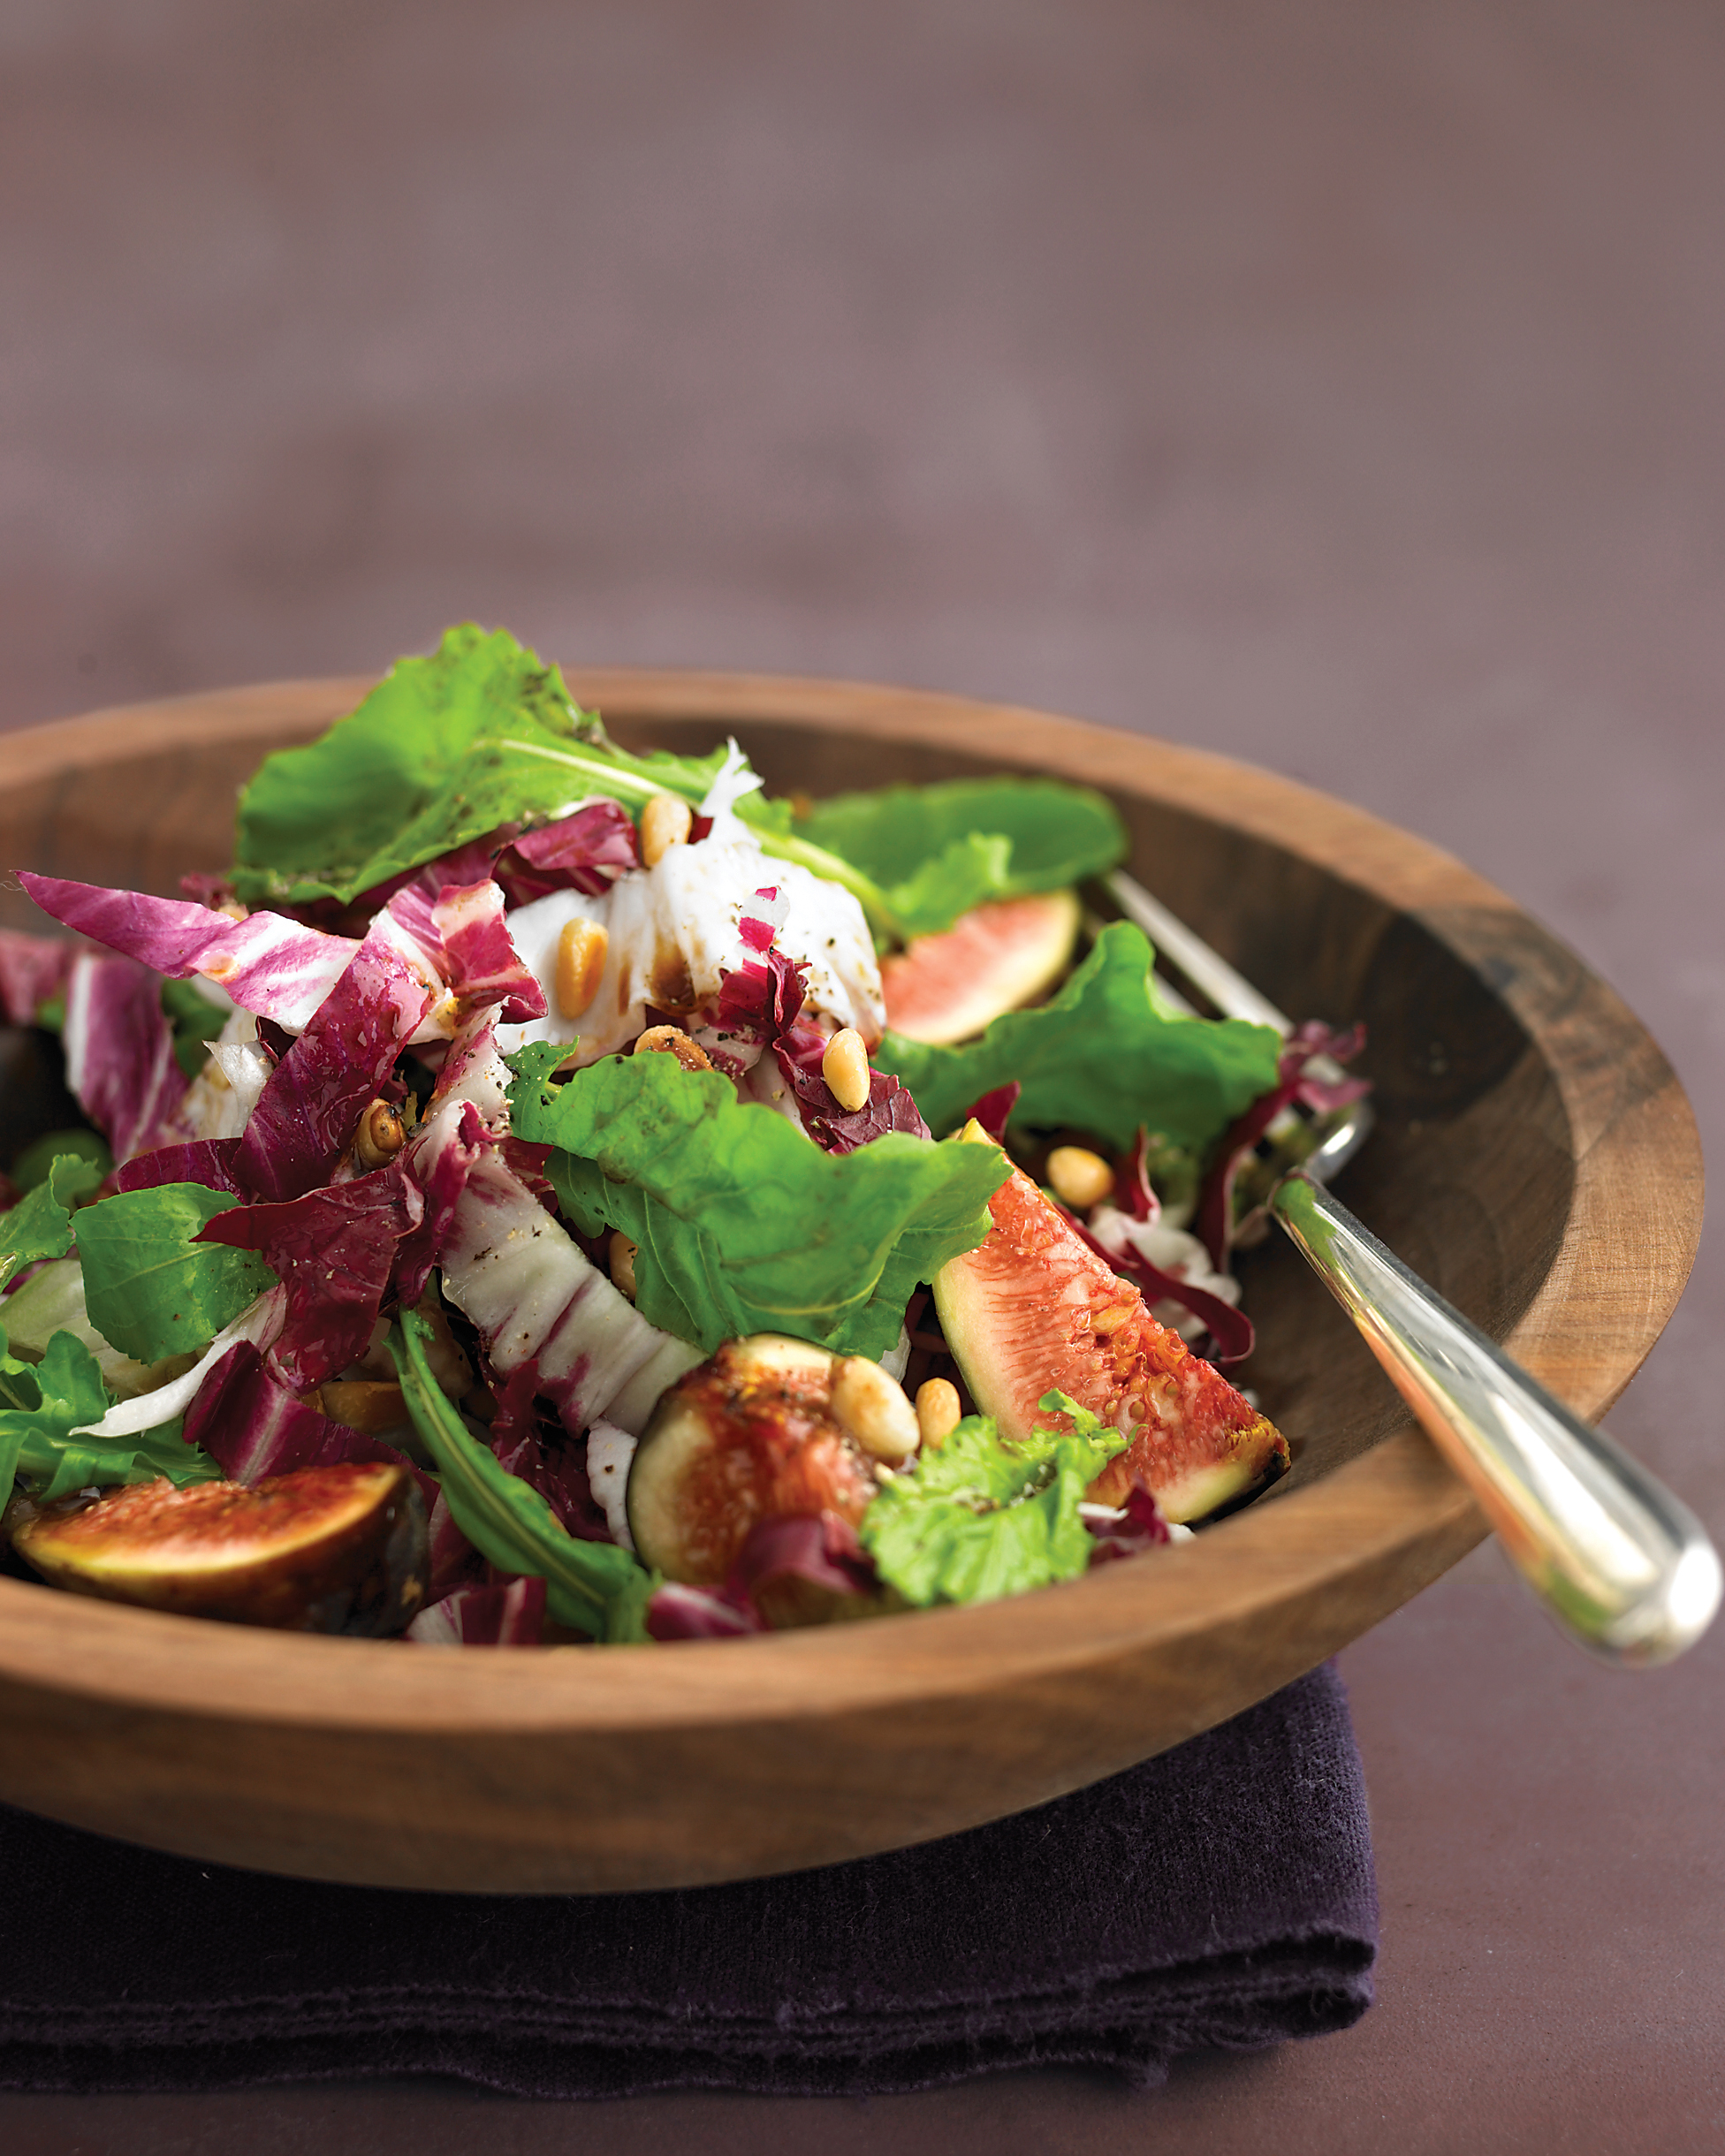 Arugula Salad with Figs, Pine Nuts, and Radicchio